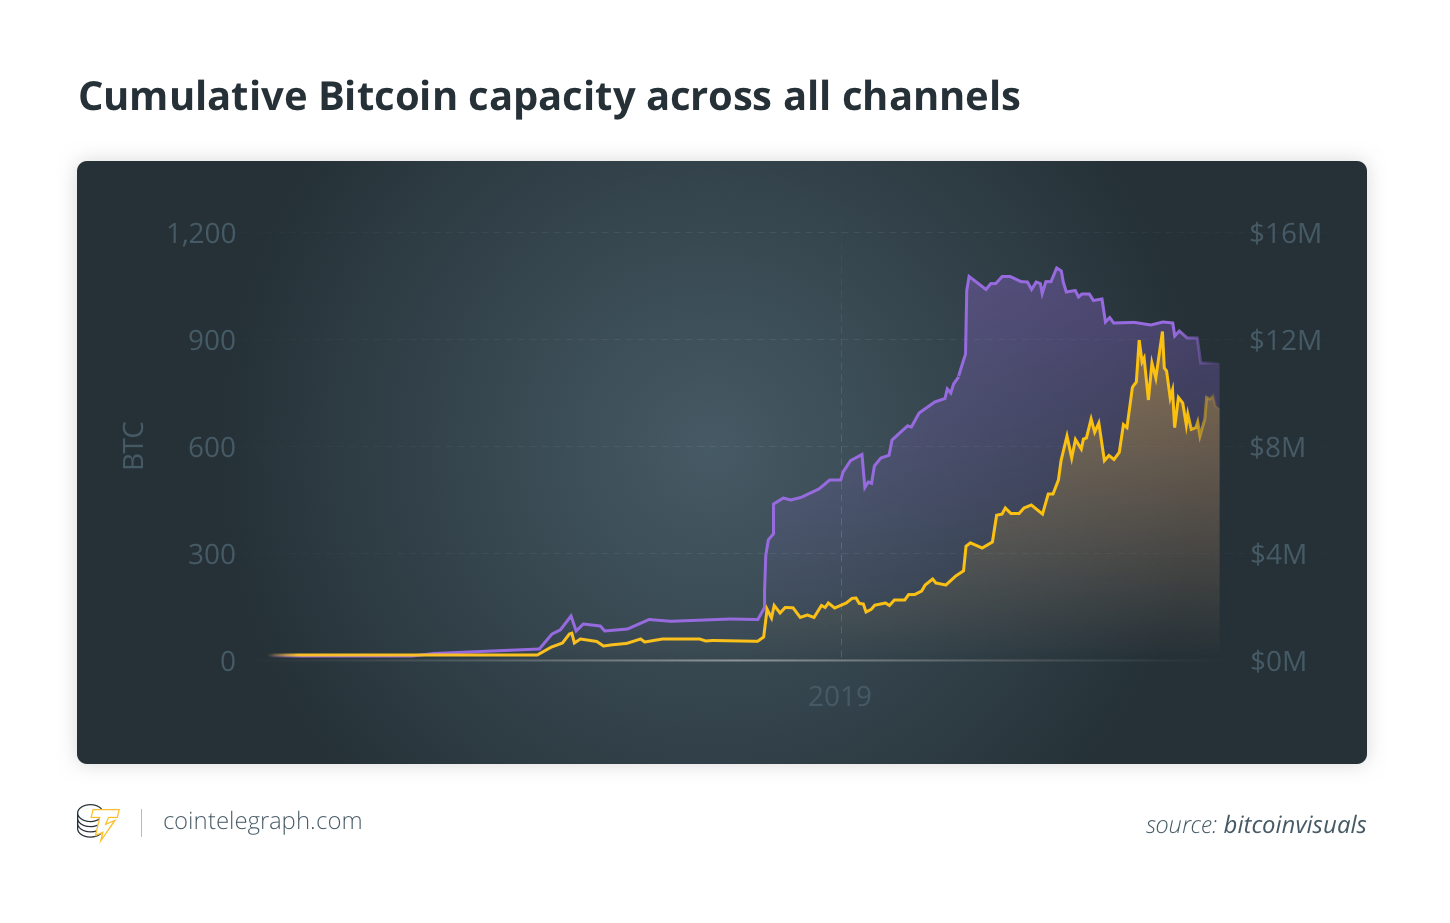 Cumulative Bitcoin capacity across all channels